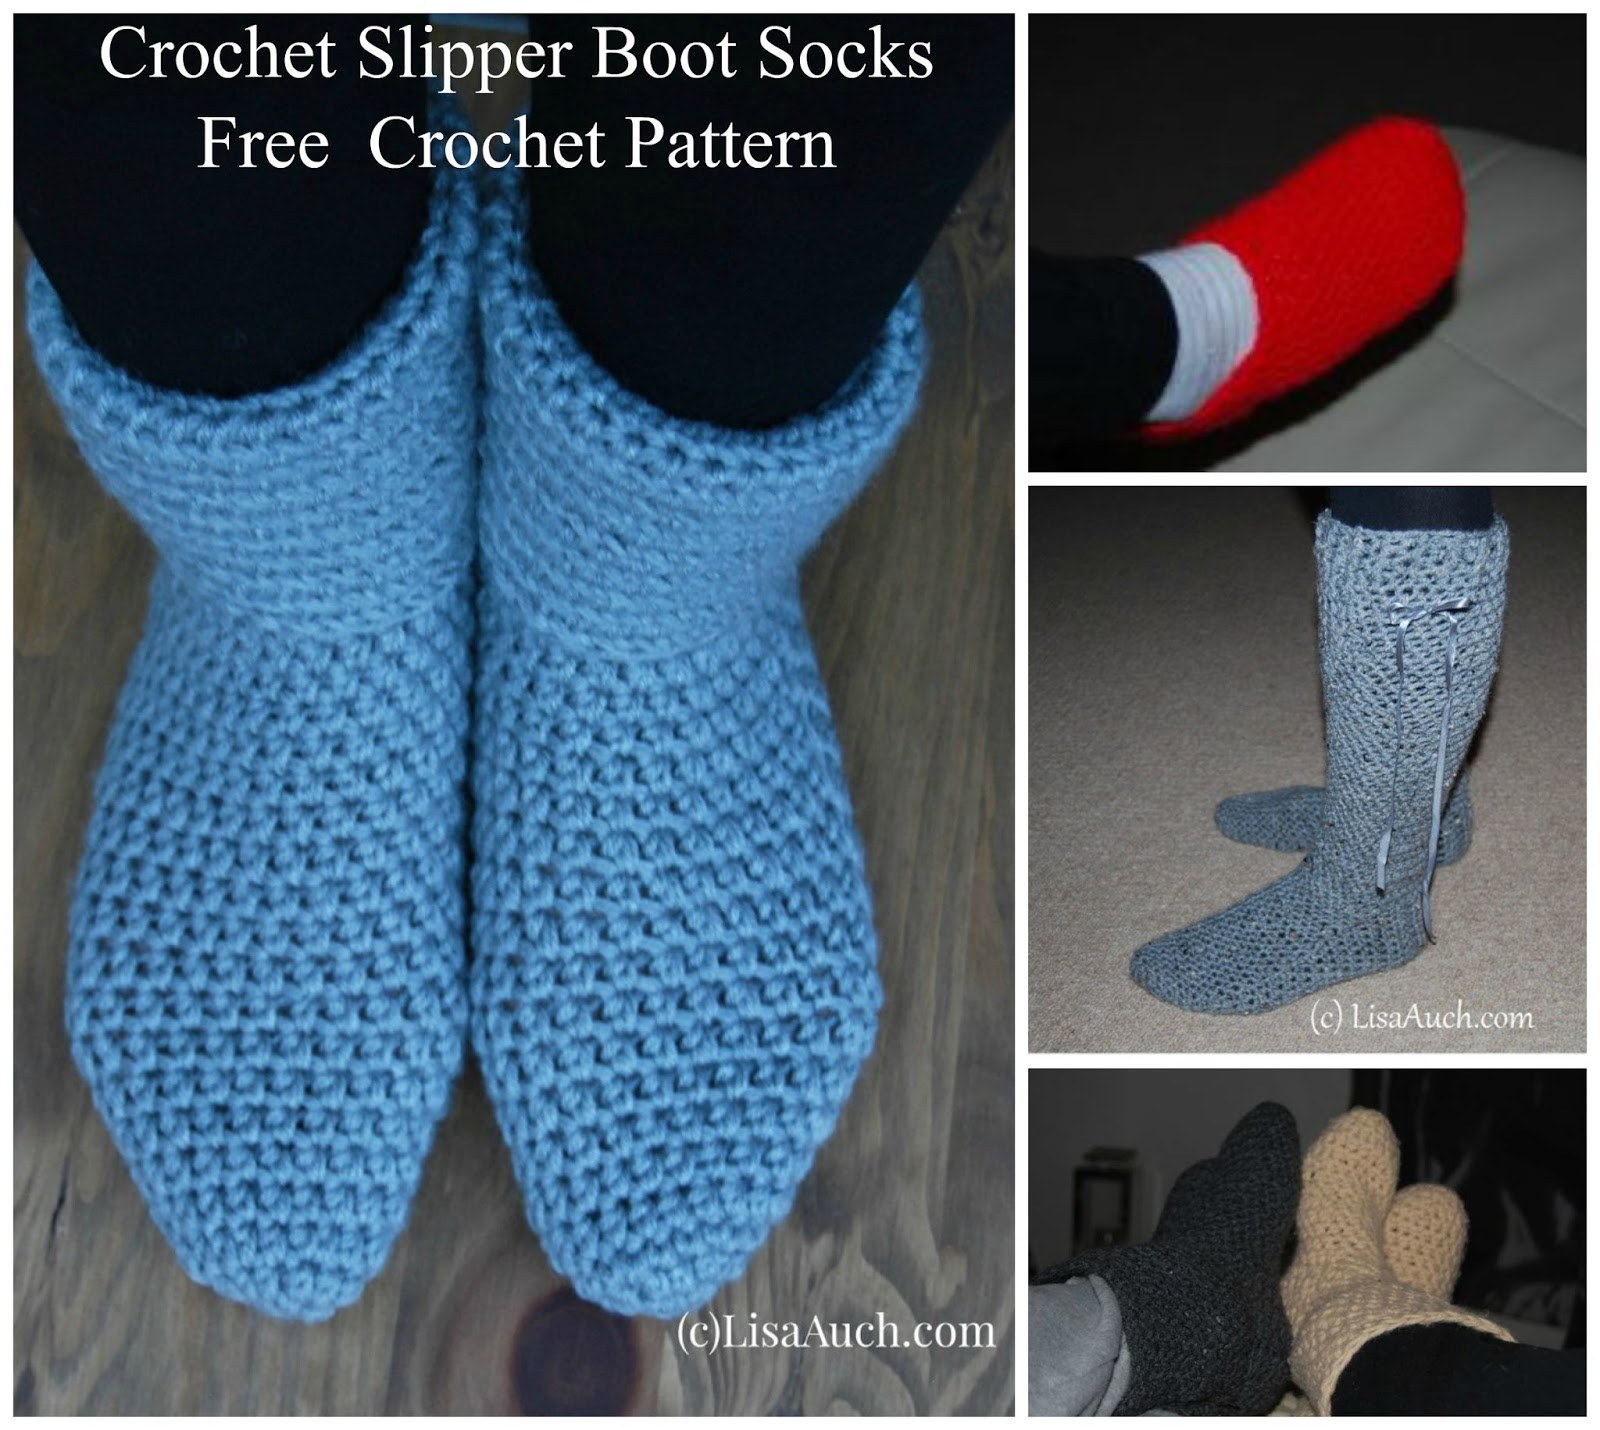 cffba935aa88f Crochet Slipper Boots A Free Crochet Pattern (How To Crochet Slipper ...